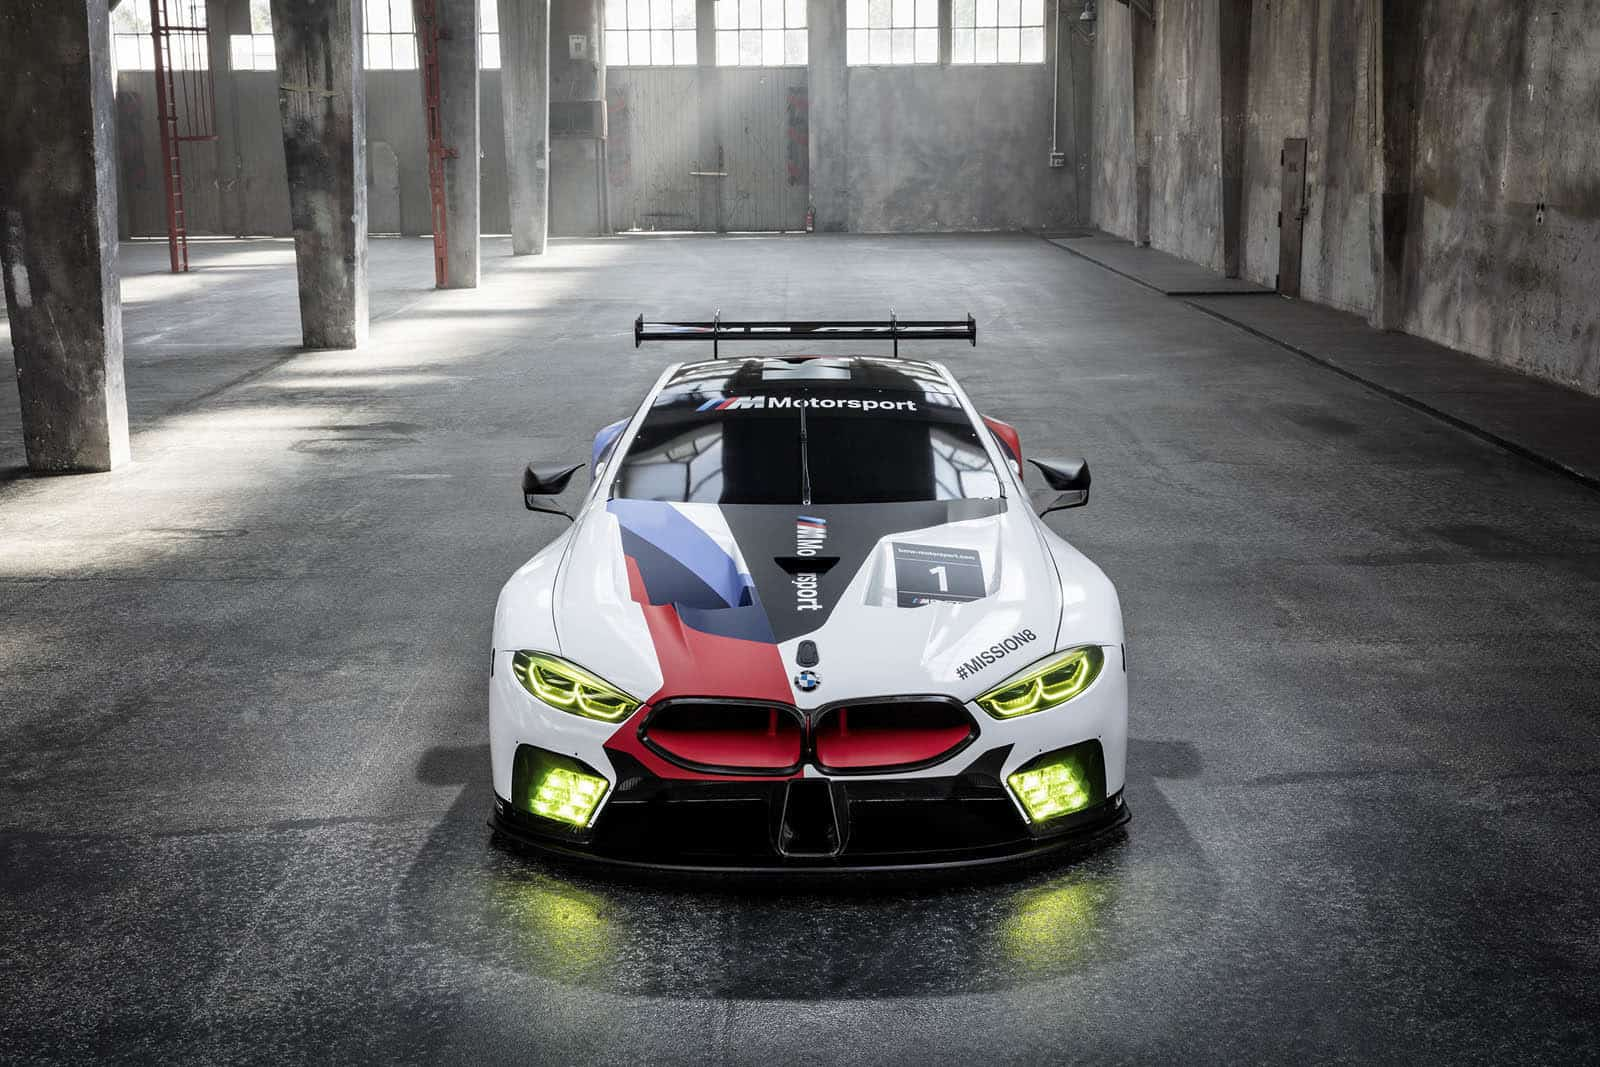 The Bmw M8 Gte Racer Is Almost Too Good To Be True